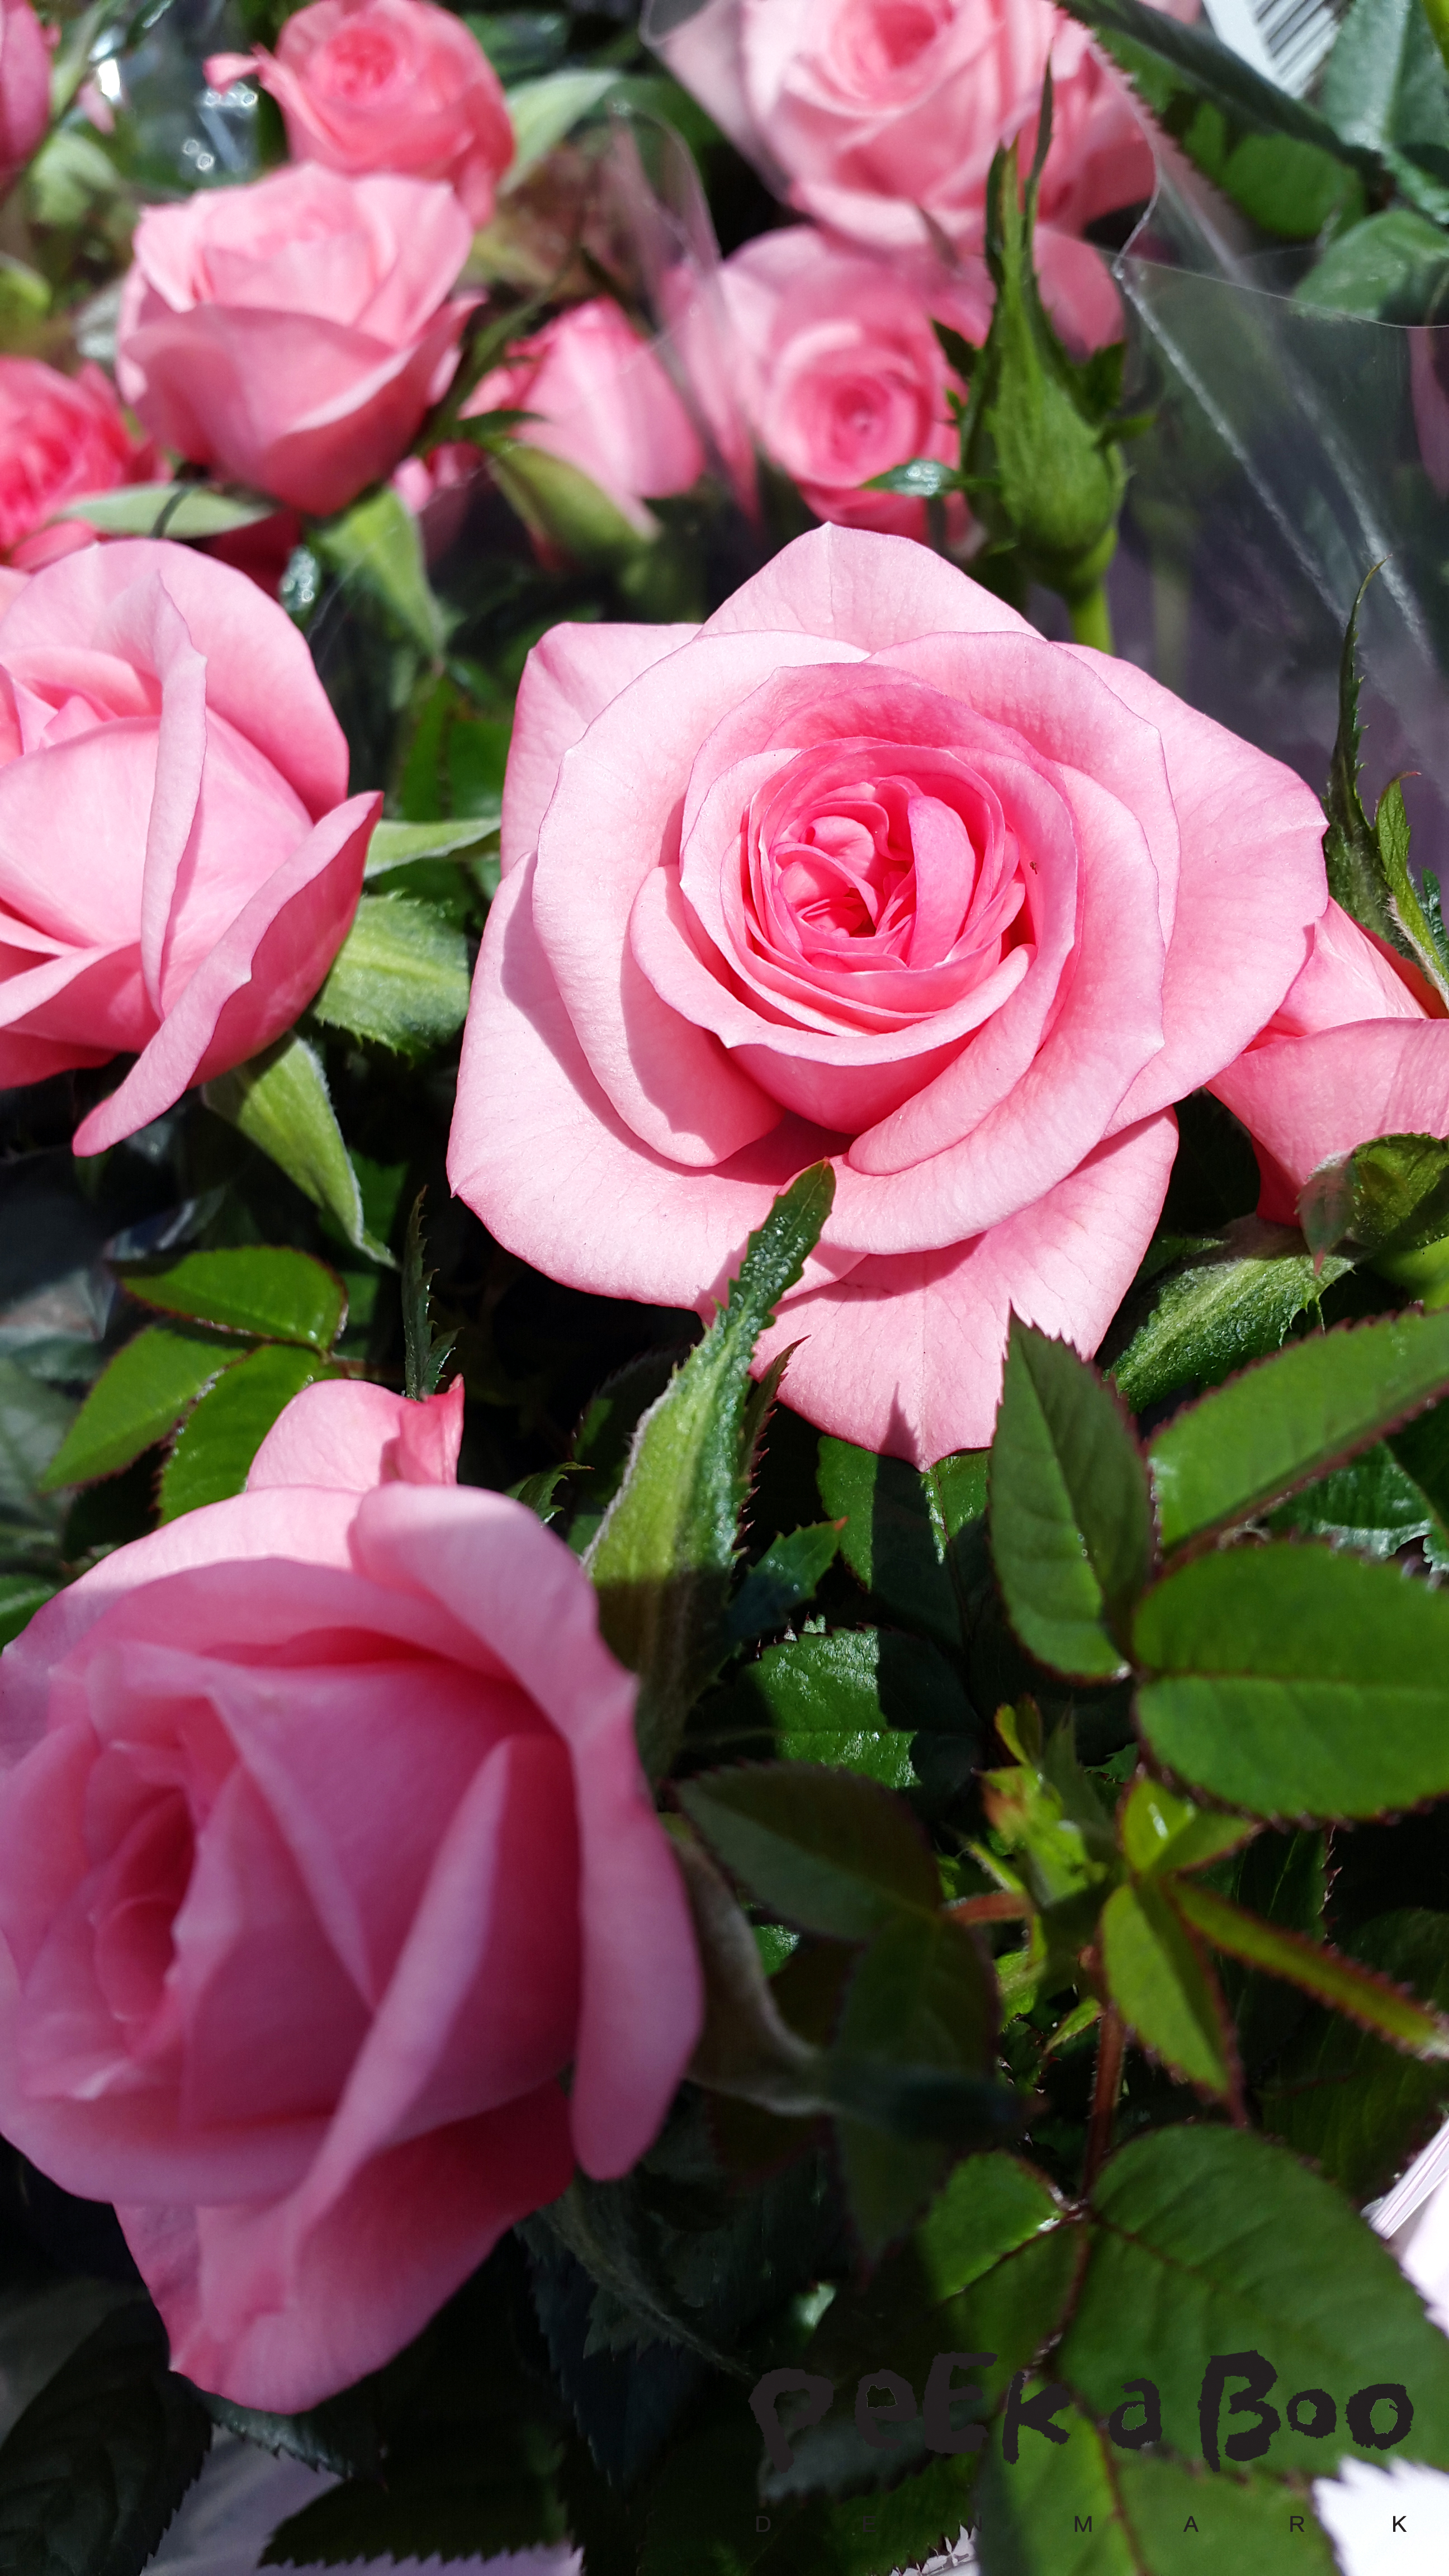 From the Danish horticulture Rosa Danica, who specialise in roses. The new thing is pot roses with scents.